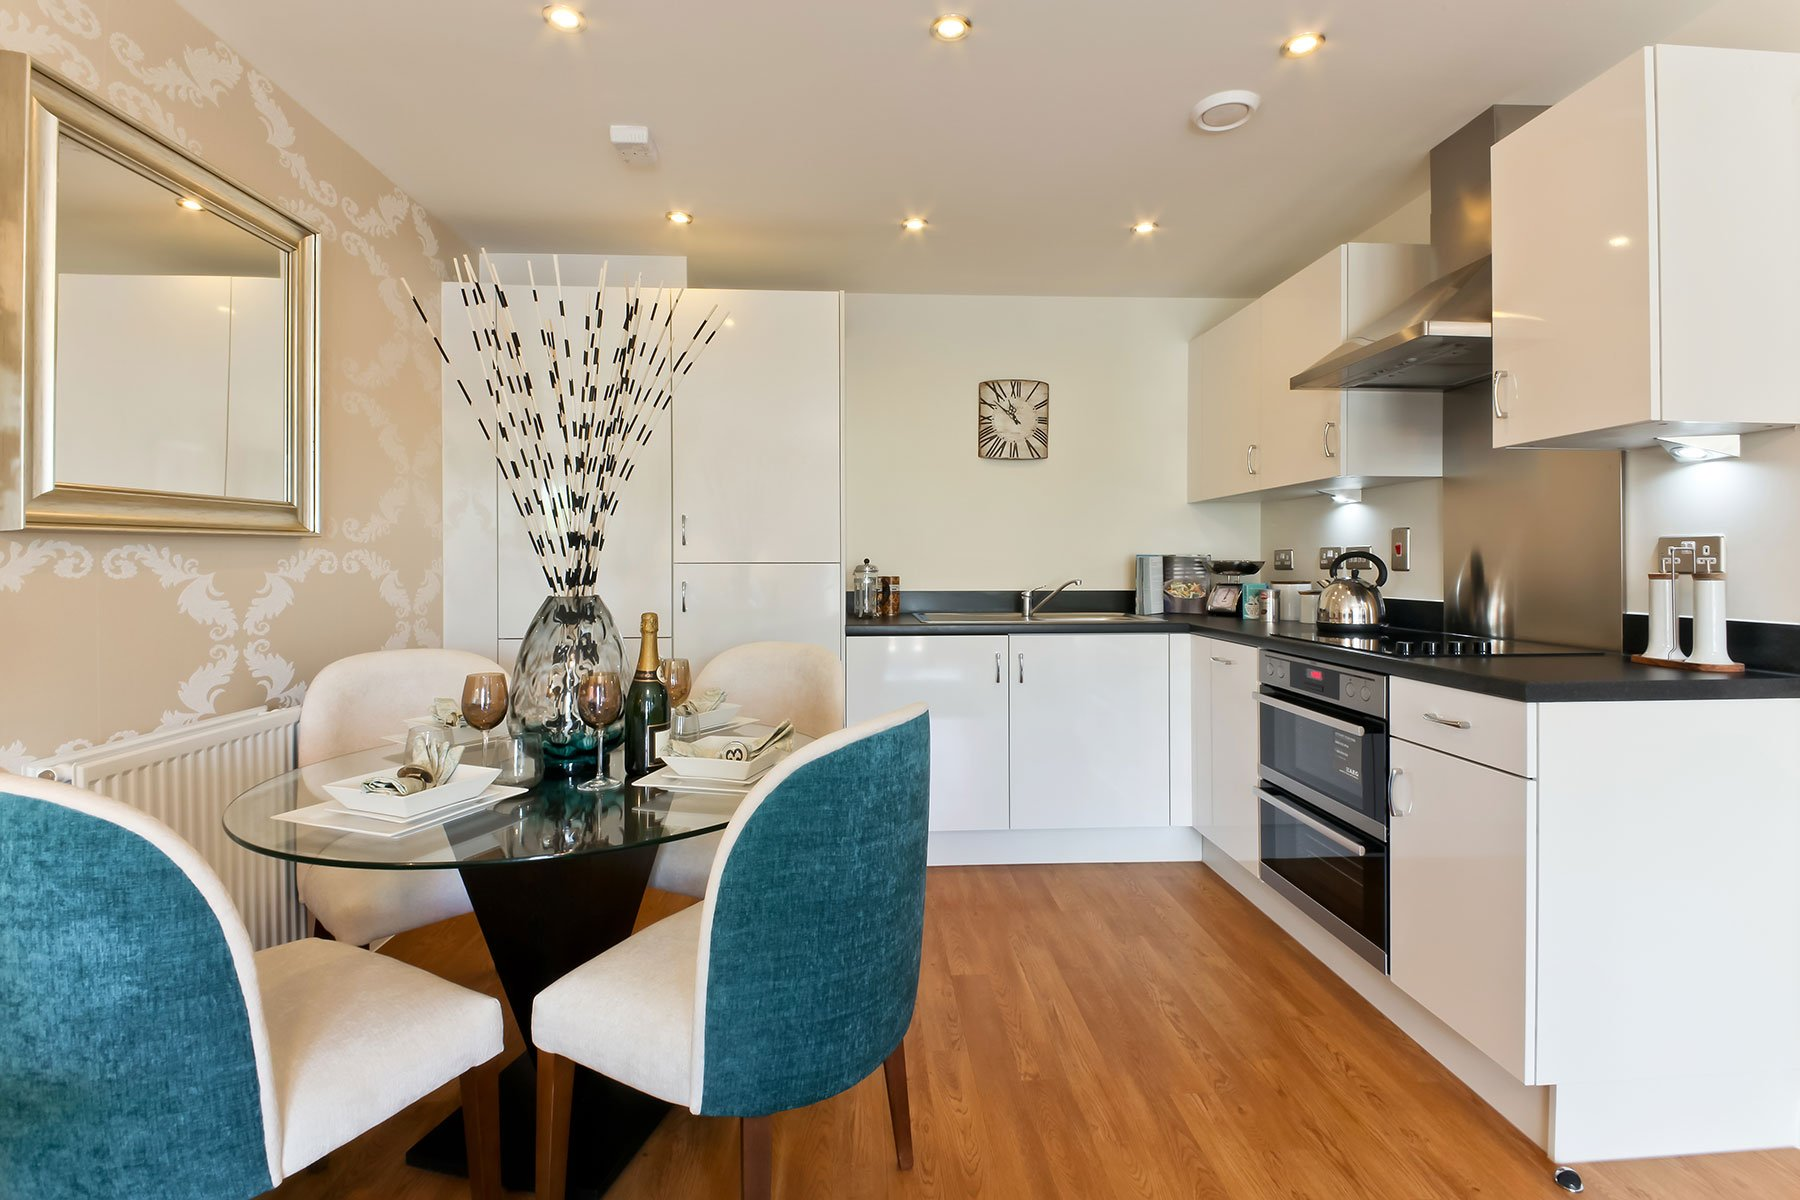 Taylor Wimpey - Typical kitchen/dining room